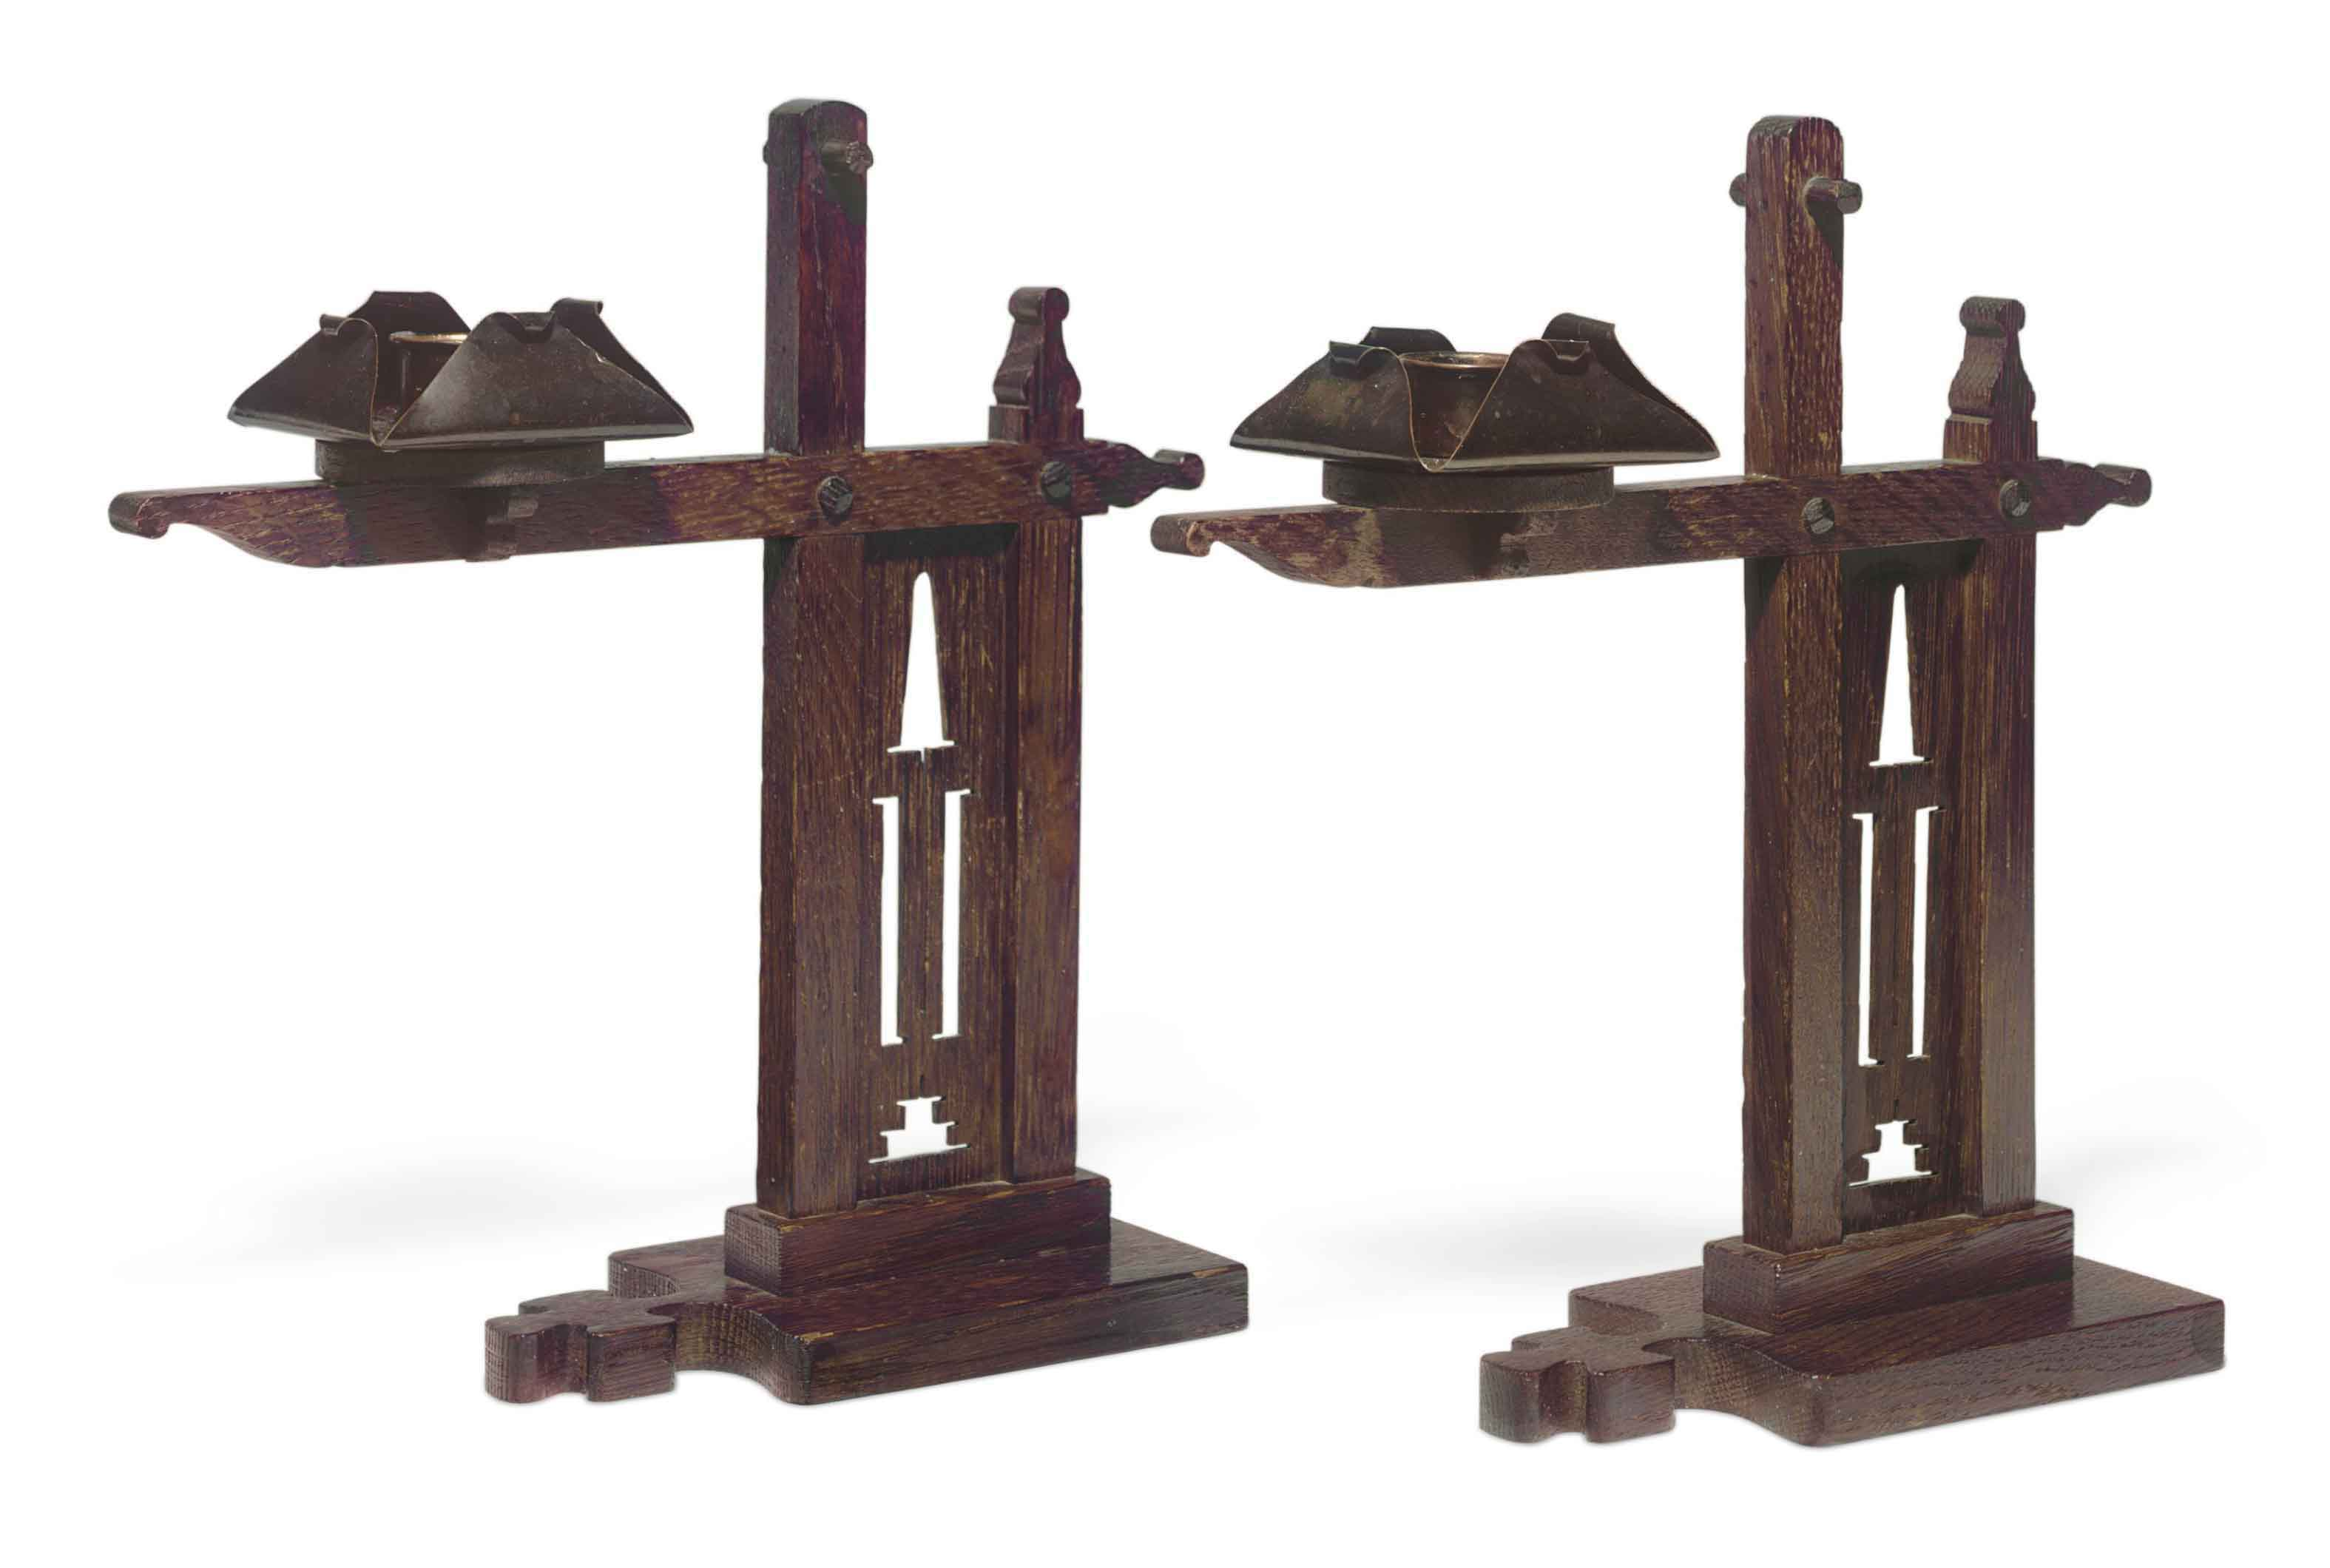 A PAIR OF ARTS AND CRAFTS OAK AND COPPER 'CRESSET' CANDLESTICKS,